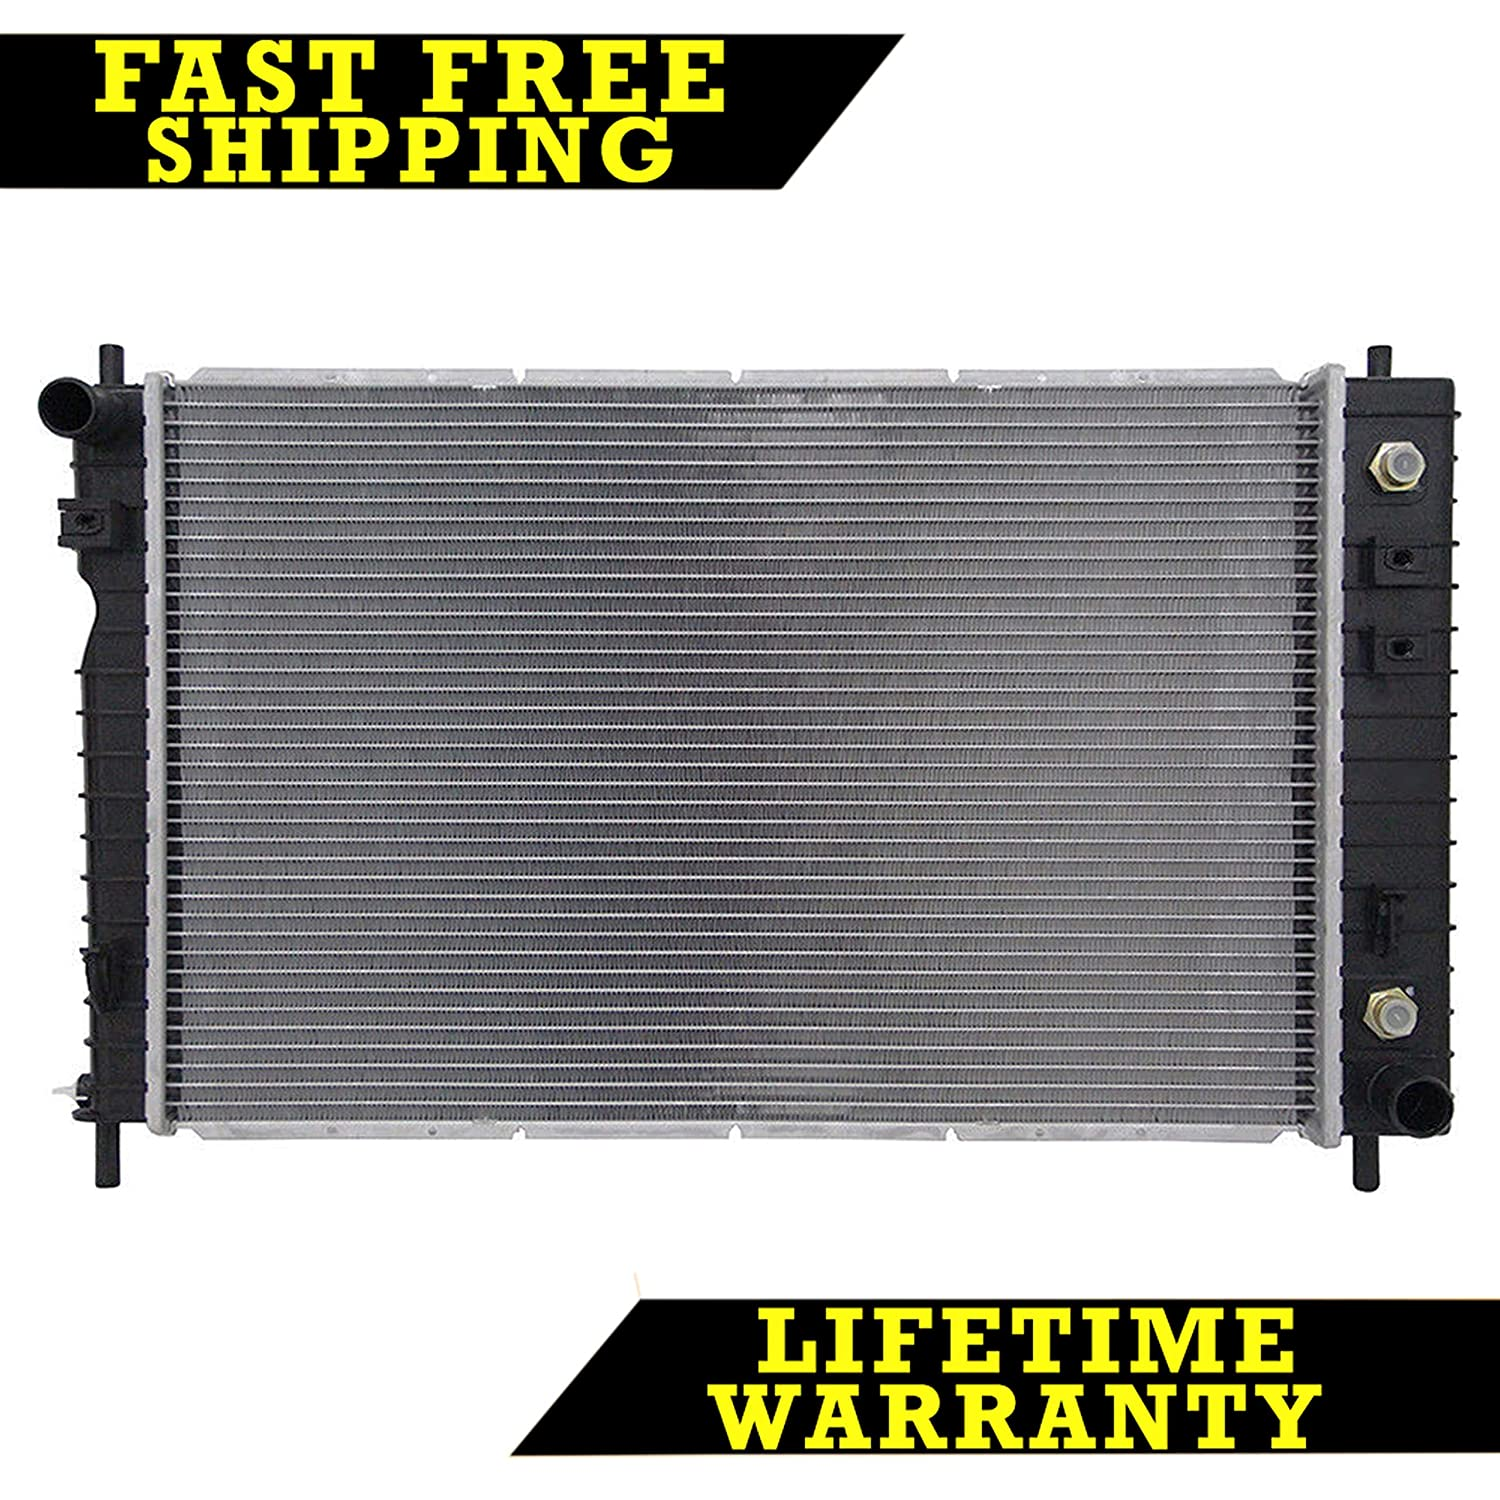 RADIATOR FOR CHEVY FITS EQUINOX 3.4 V6 6CYL 2764 Sunbelt Radiators